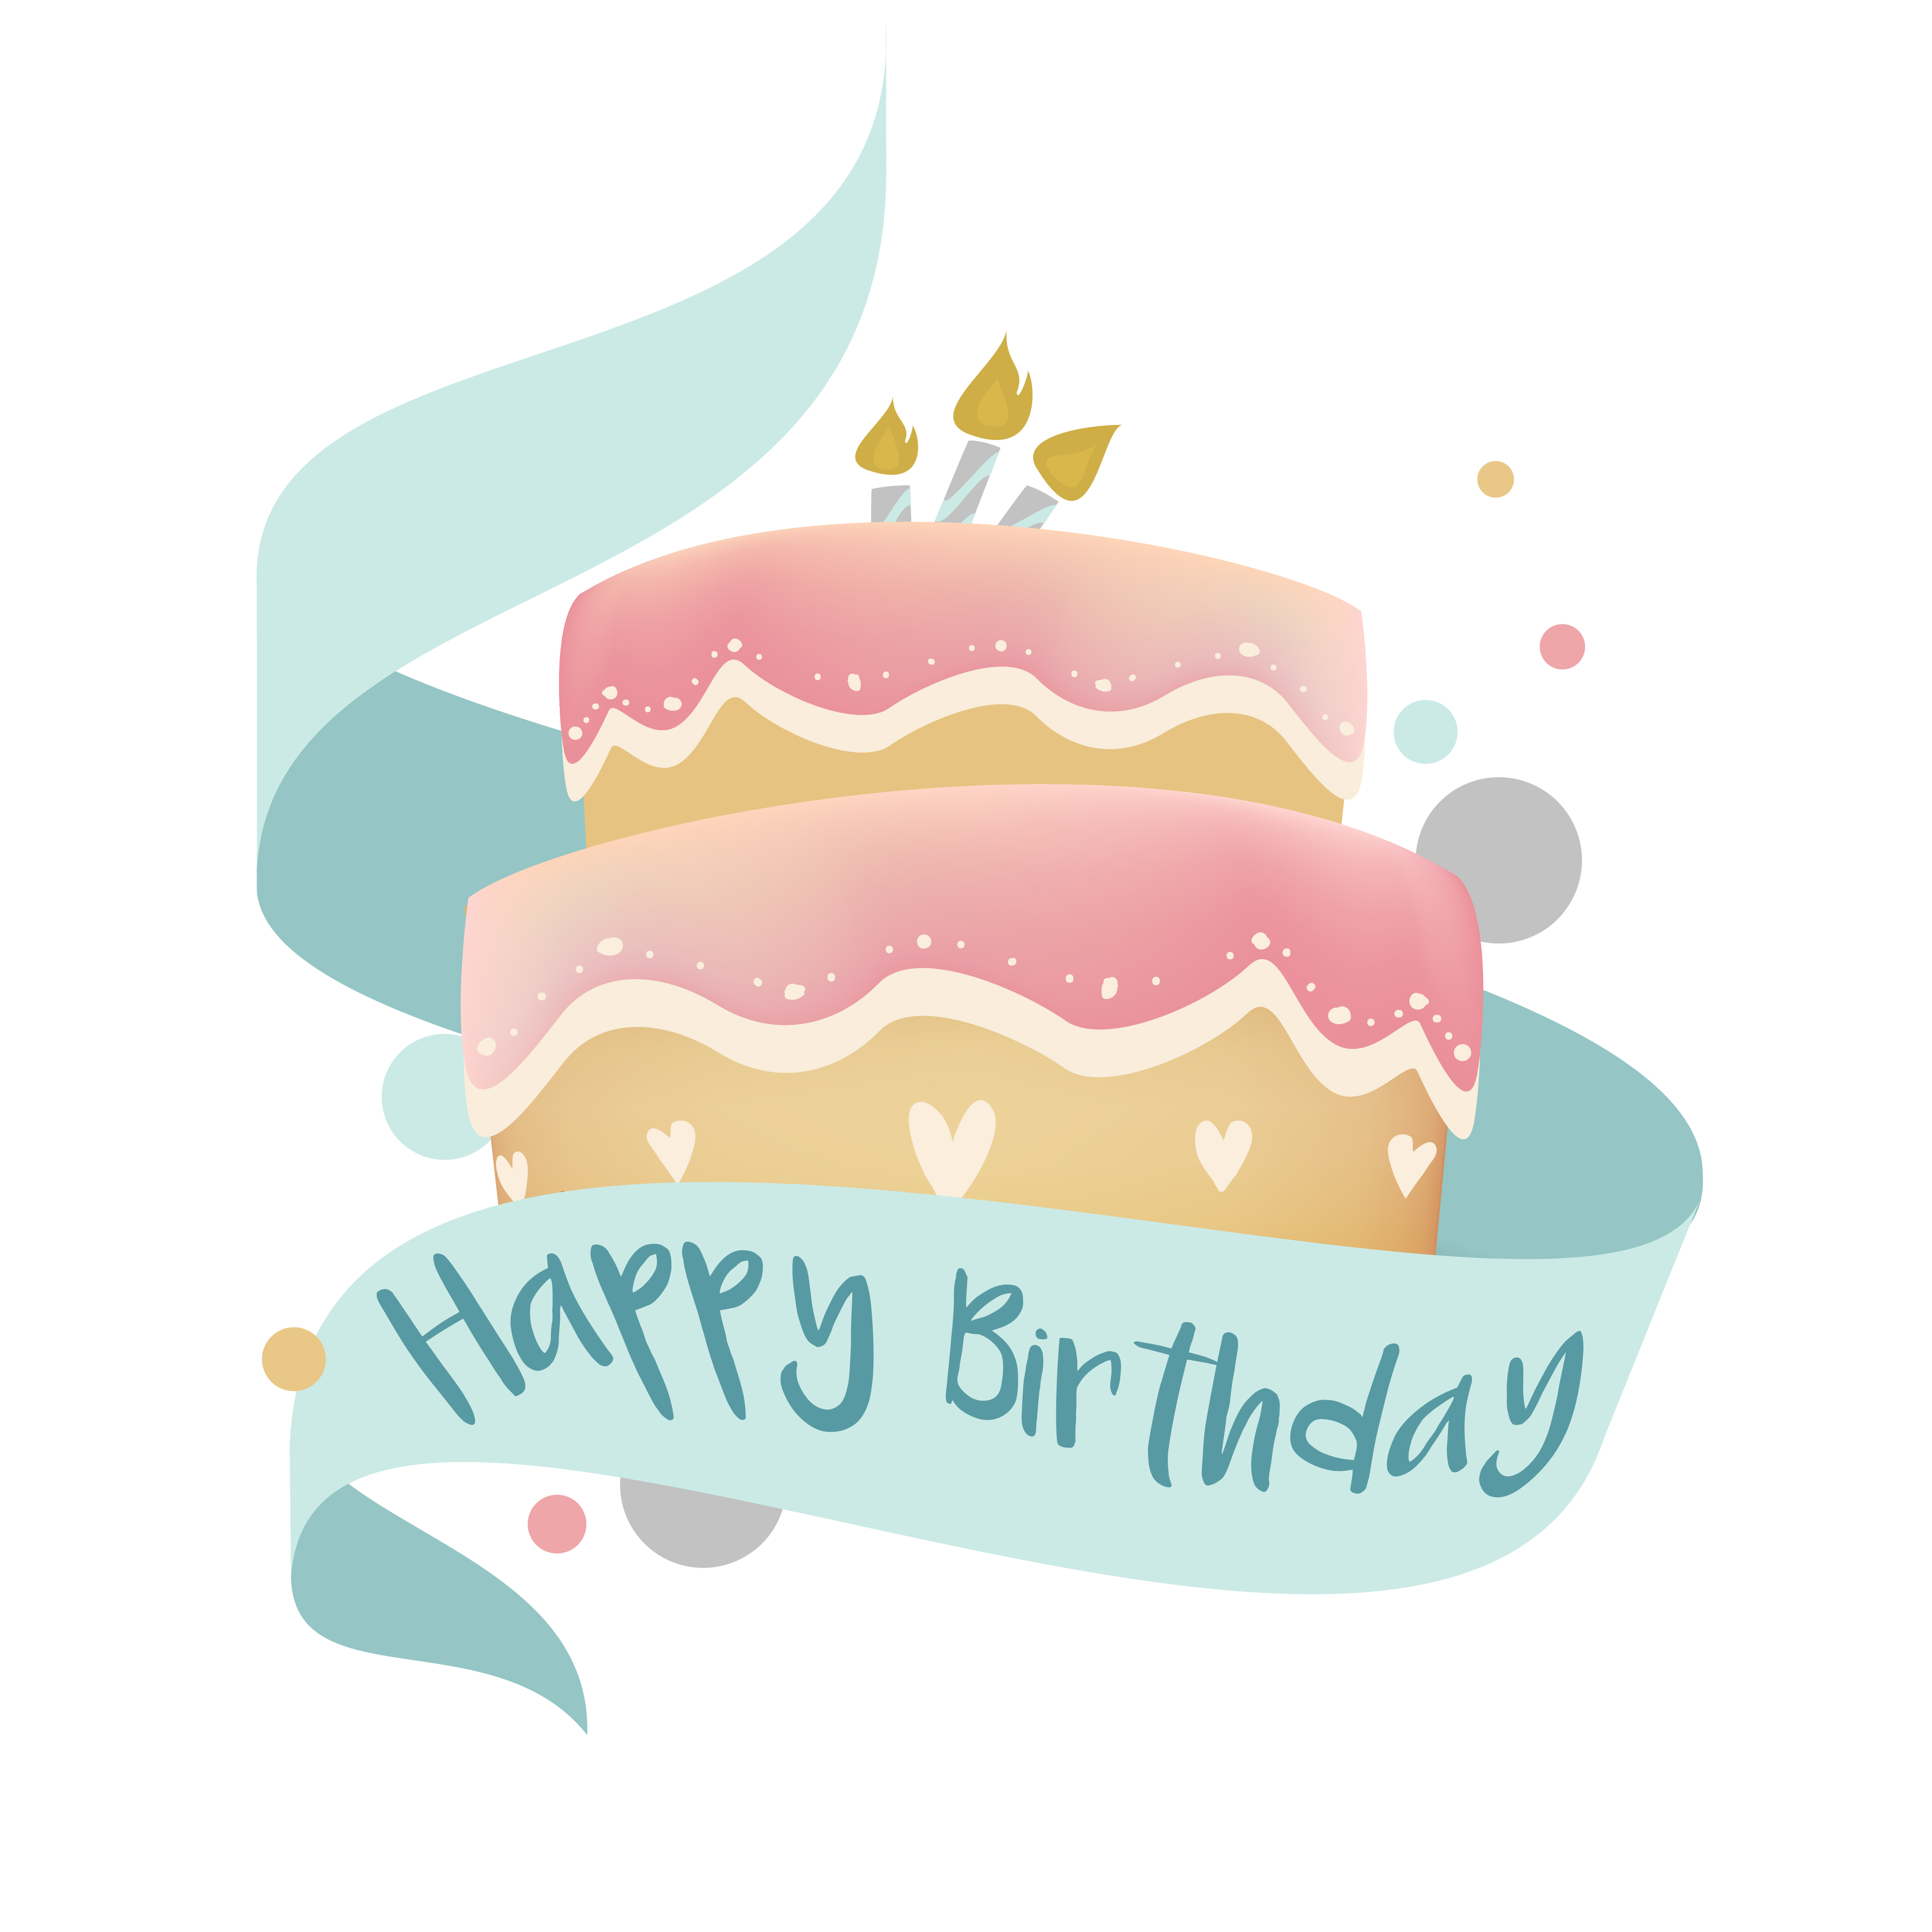 Wondrous Happy Birthday Cake Design Vector Download Free Vectors Clipart Funny Birthday Cards Online Inifofree Goldxyz